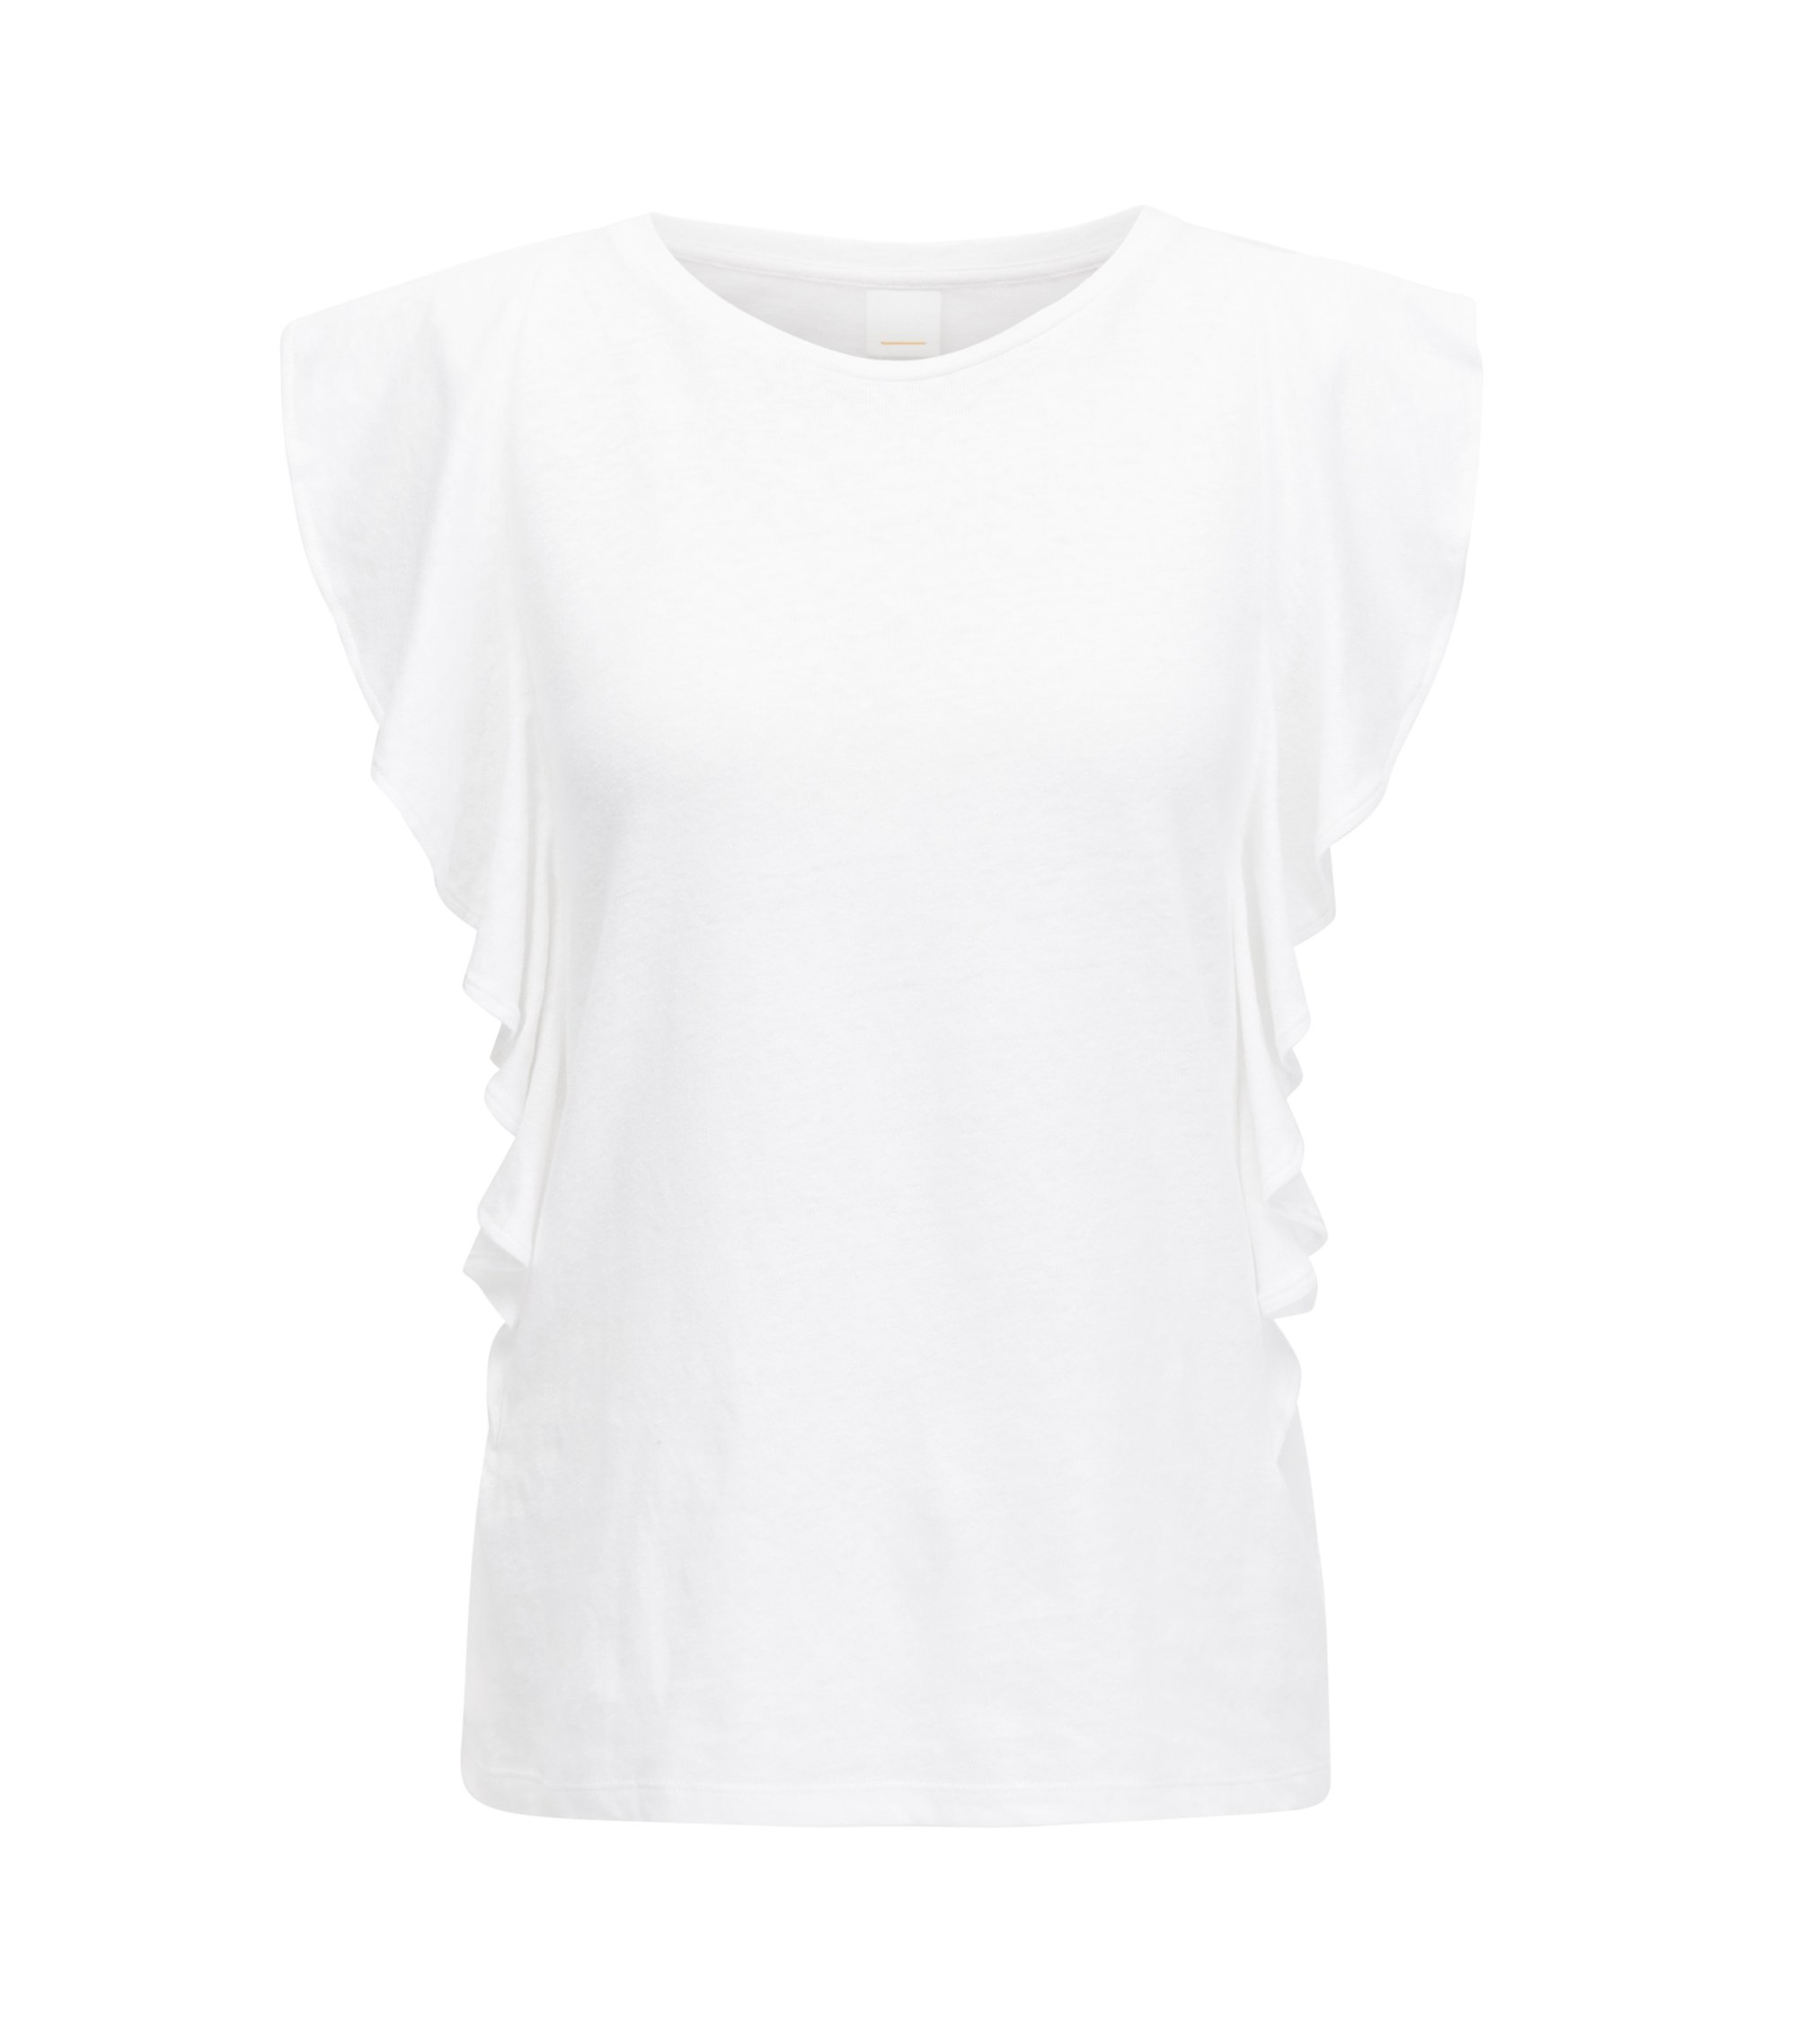 Ruffle-sleeve top in a cotton-linen blend, White